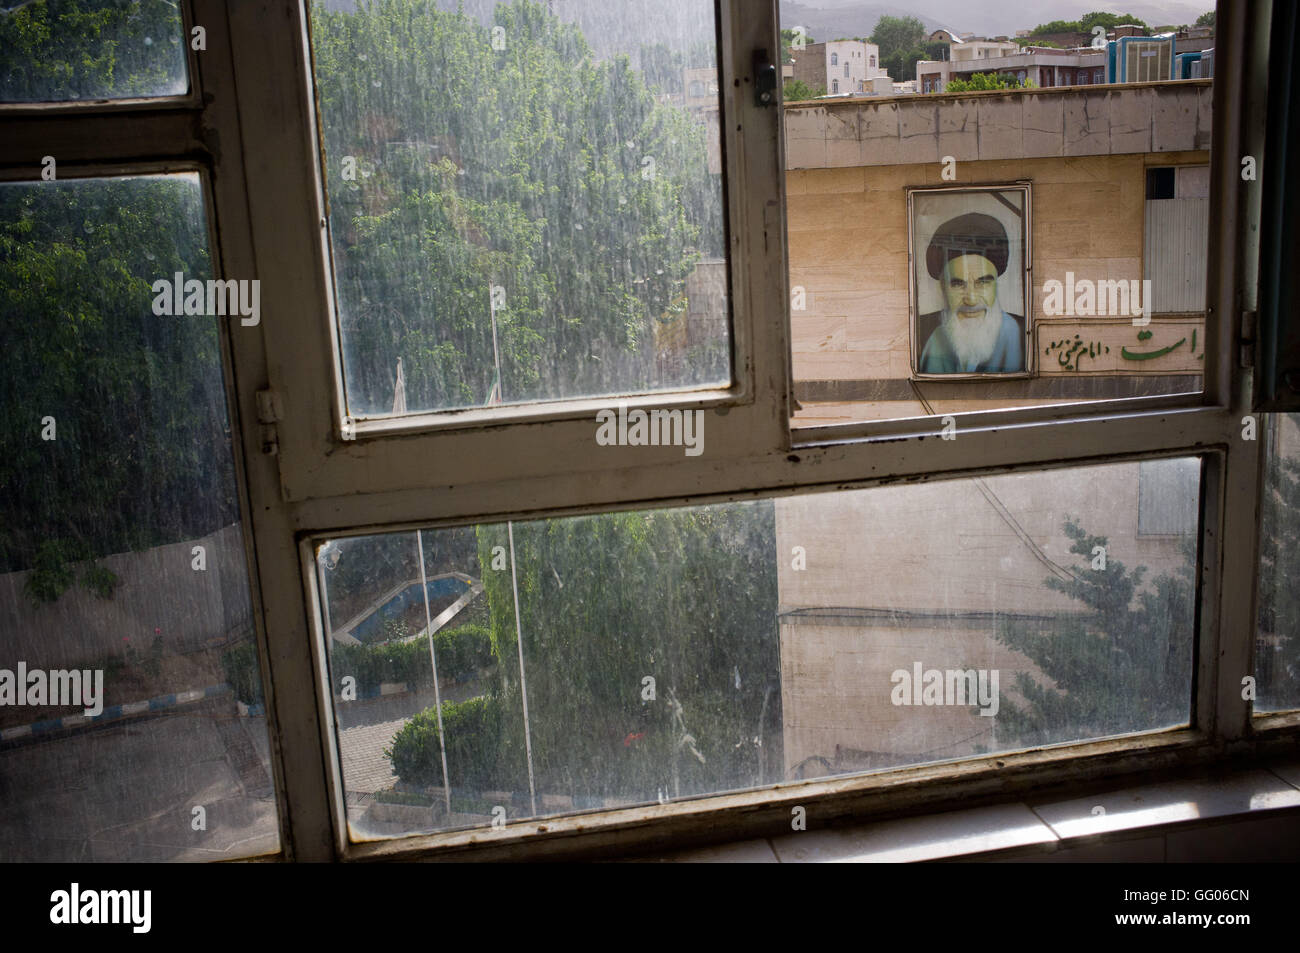 Sanandaj, Iranian Kurdistan, Iran. 29th May, 2013. File Image - The image of the leader of the Iranian Revolution - Stock Image